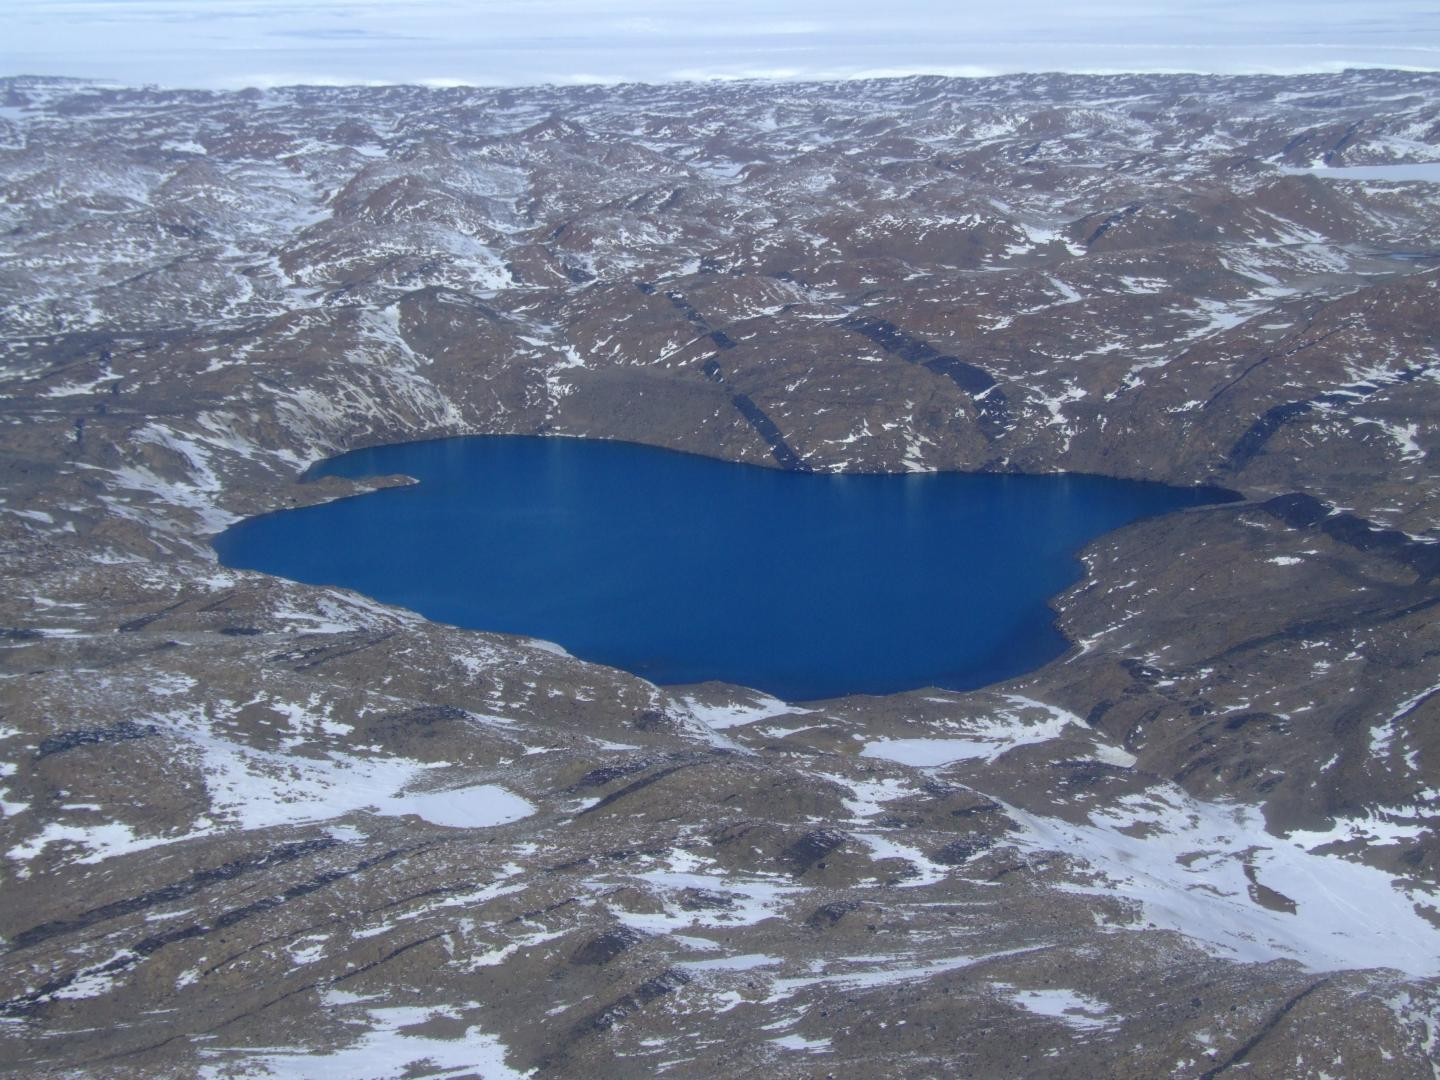 Deep Lake in the Vestfold Hills region of Antarctica. The 36-metre deep lake is so salty it remains in liquid form down to a temperature of minus 20 degrees. / Credit: UNSW Sydney